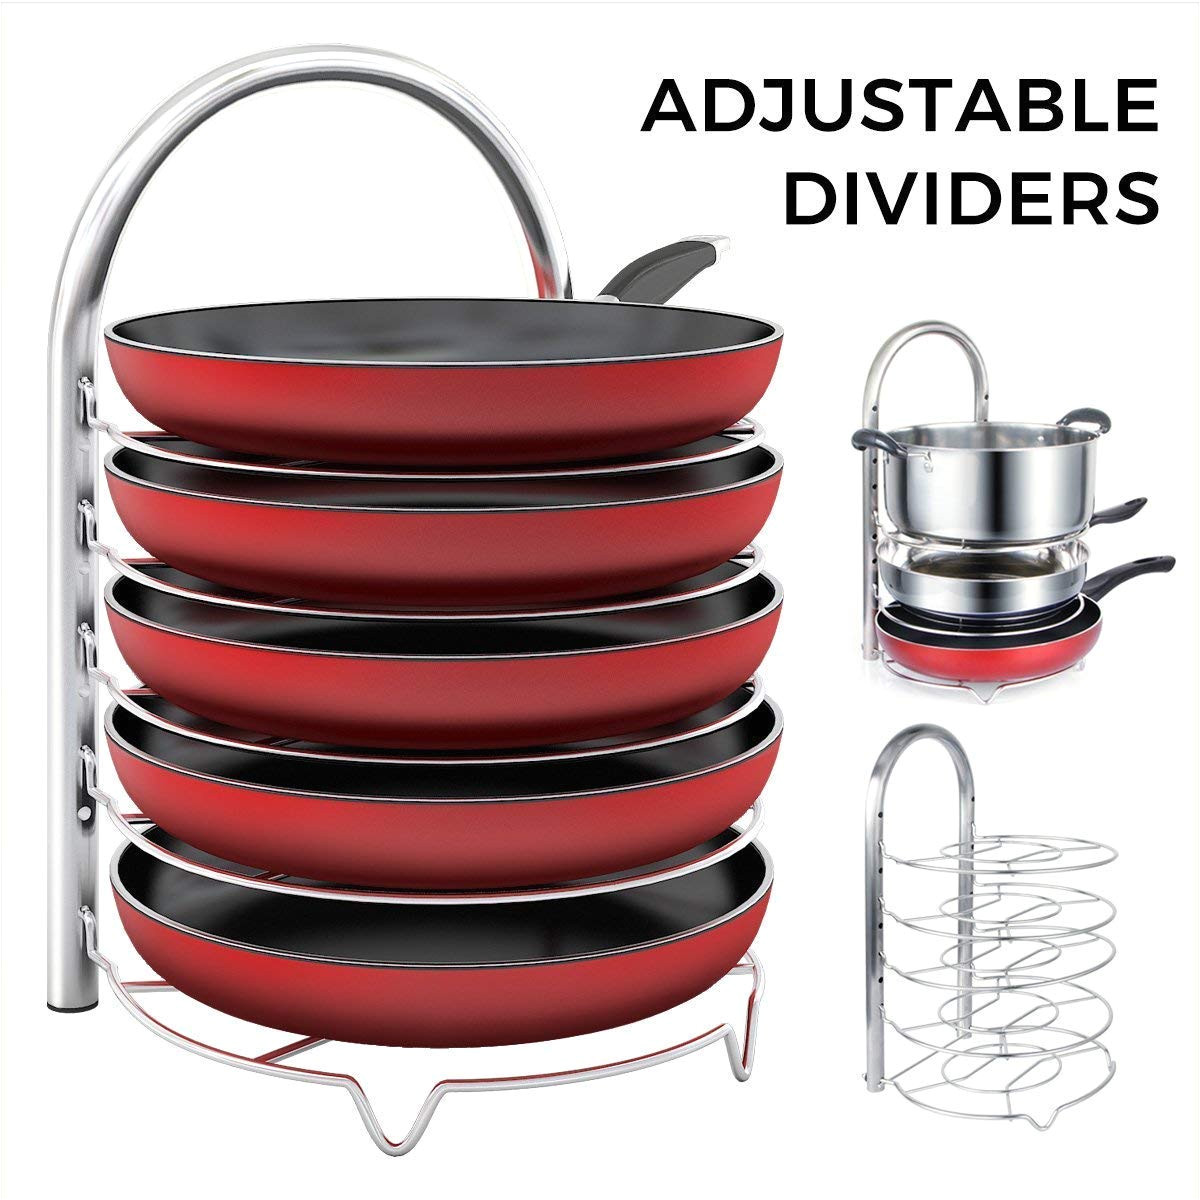 amazon com lifewit adjustable pan pot organizer rack for 8 9 10 11 12 inch cookware 5 tier cookware holder for cabinet worktop storage 18 10 stainless